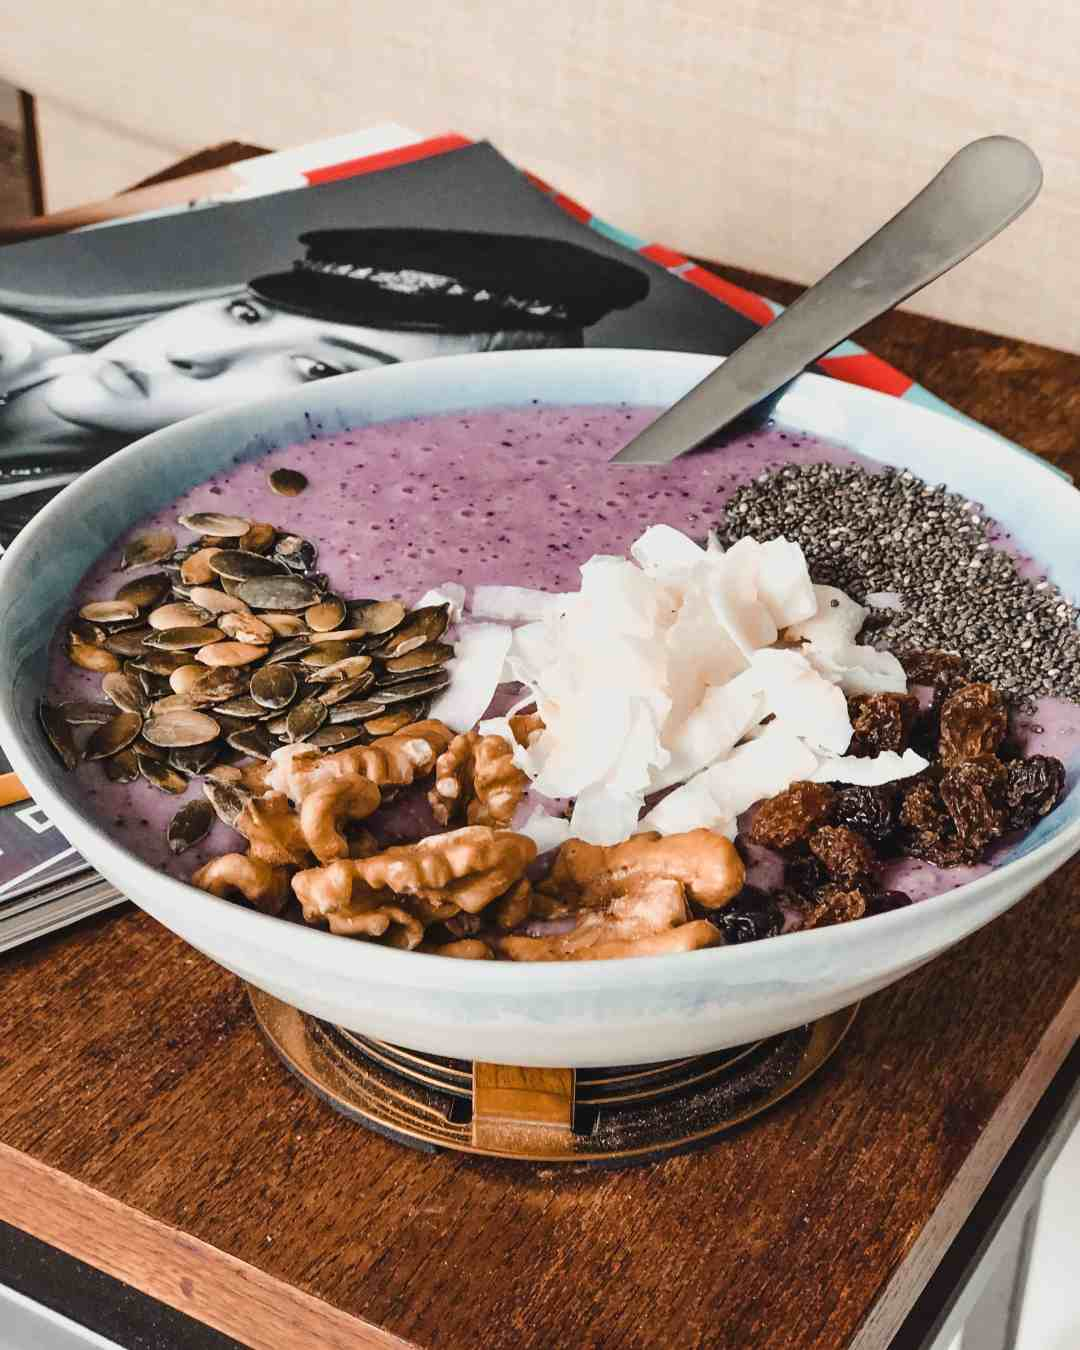 Smoothiebowl breakfast